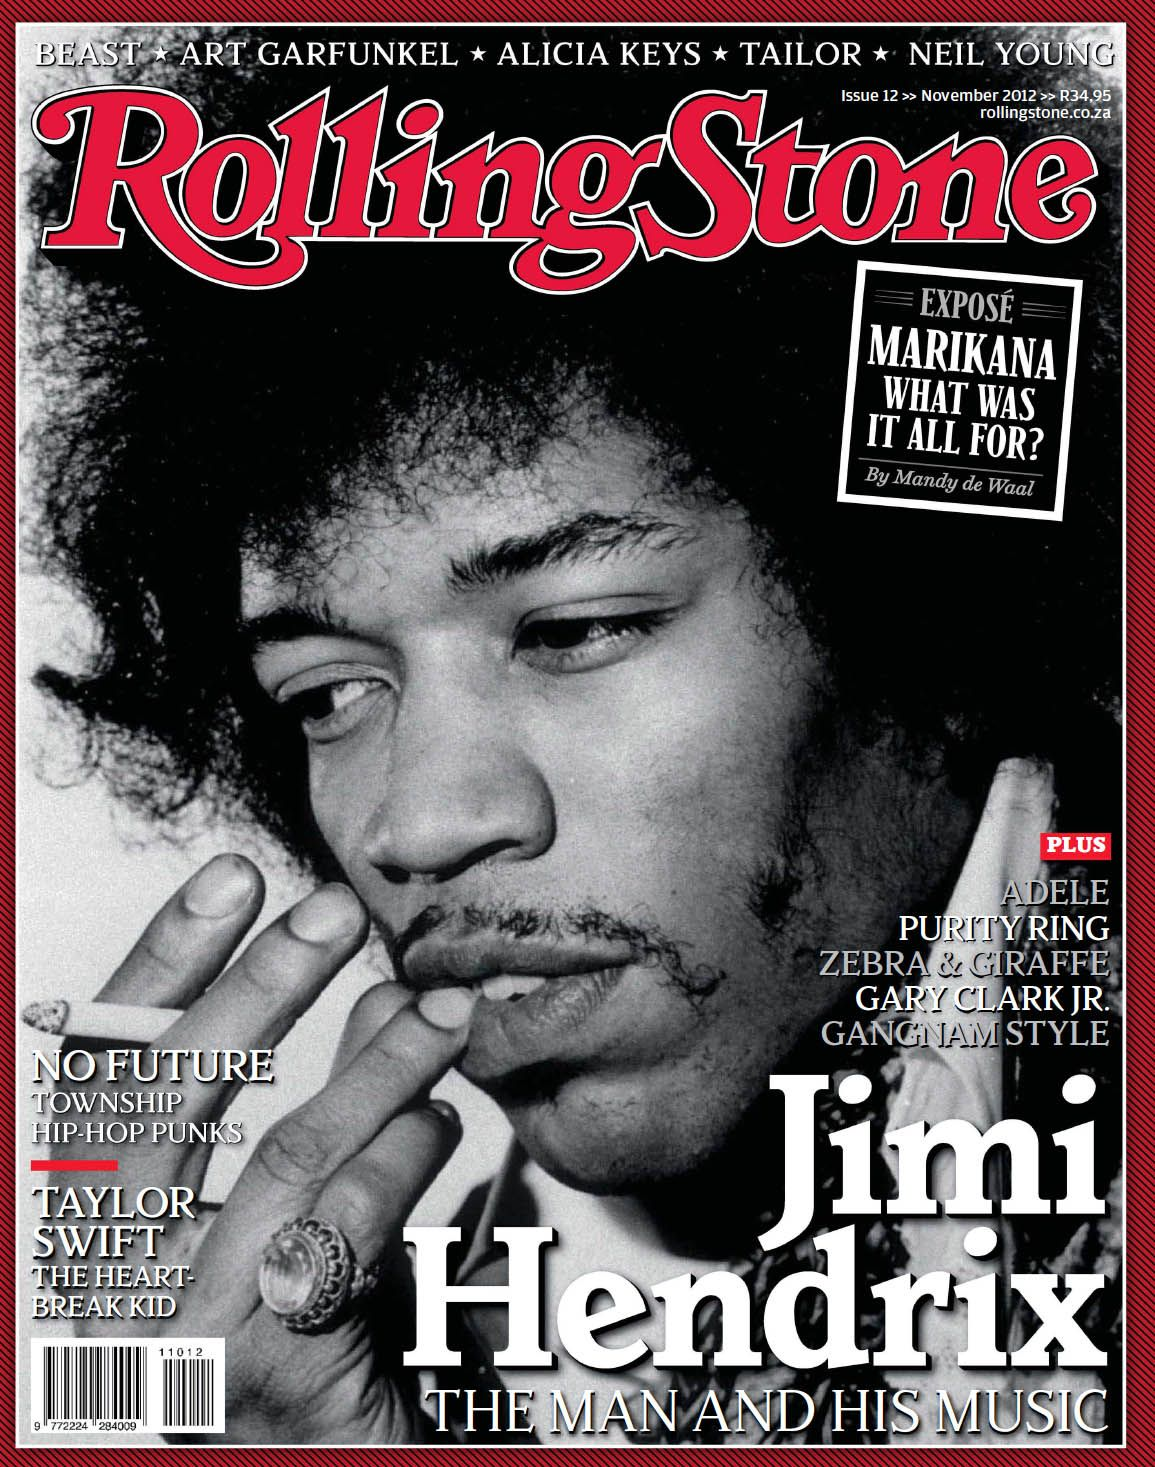 Vintage Rolling Stone Magazine Covers | RollingStone ... Rolling Stone Magazine